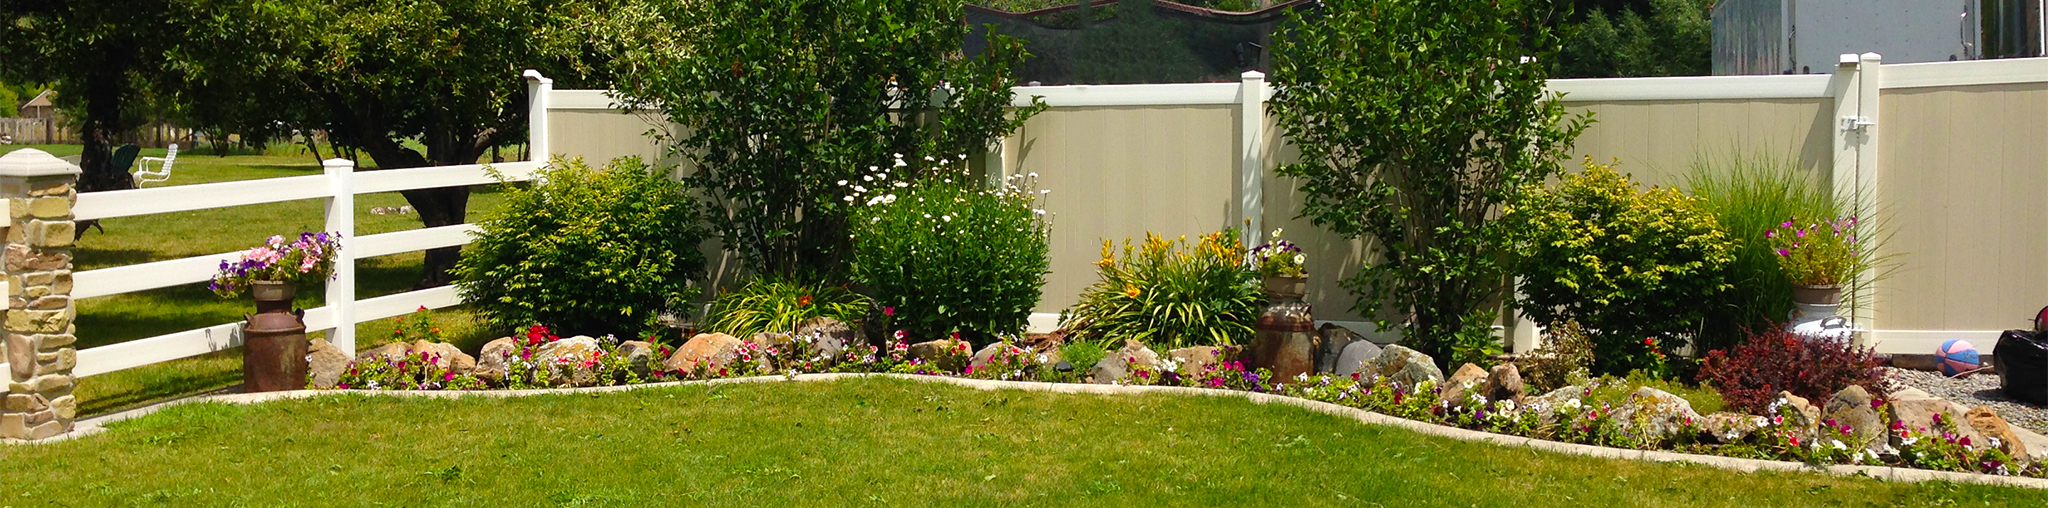 Two-Tone Vinyl Privacy Fence with Gate (on Right) Next to Flower Bed